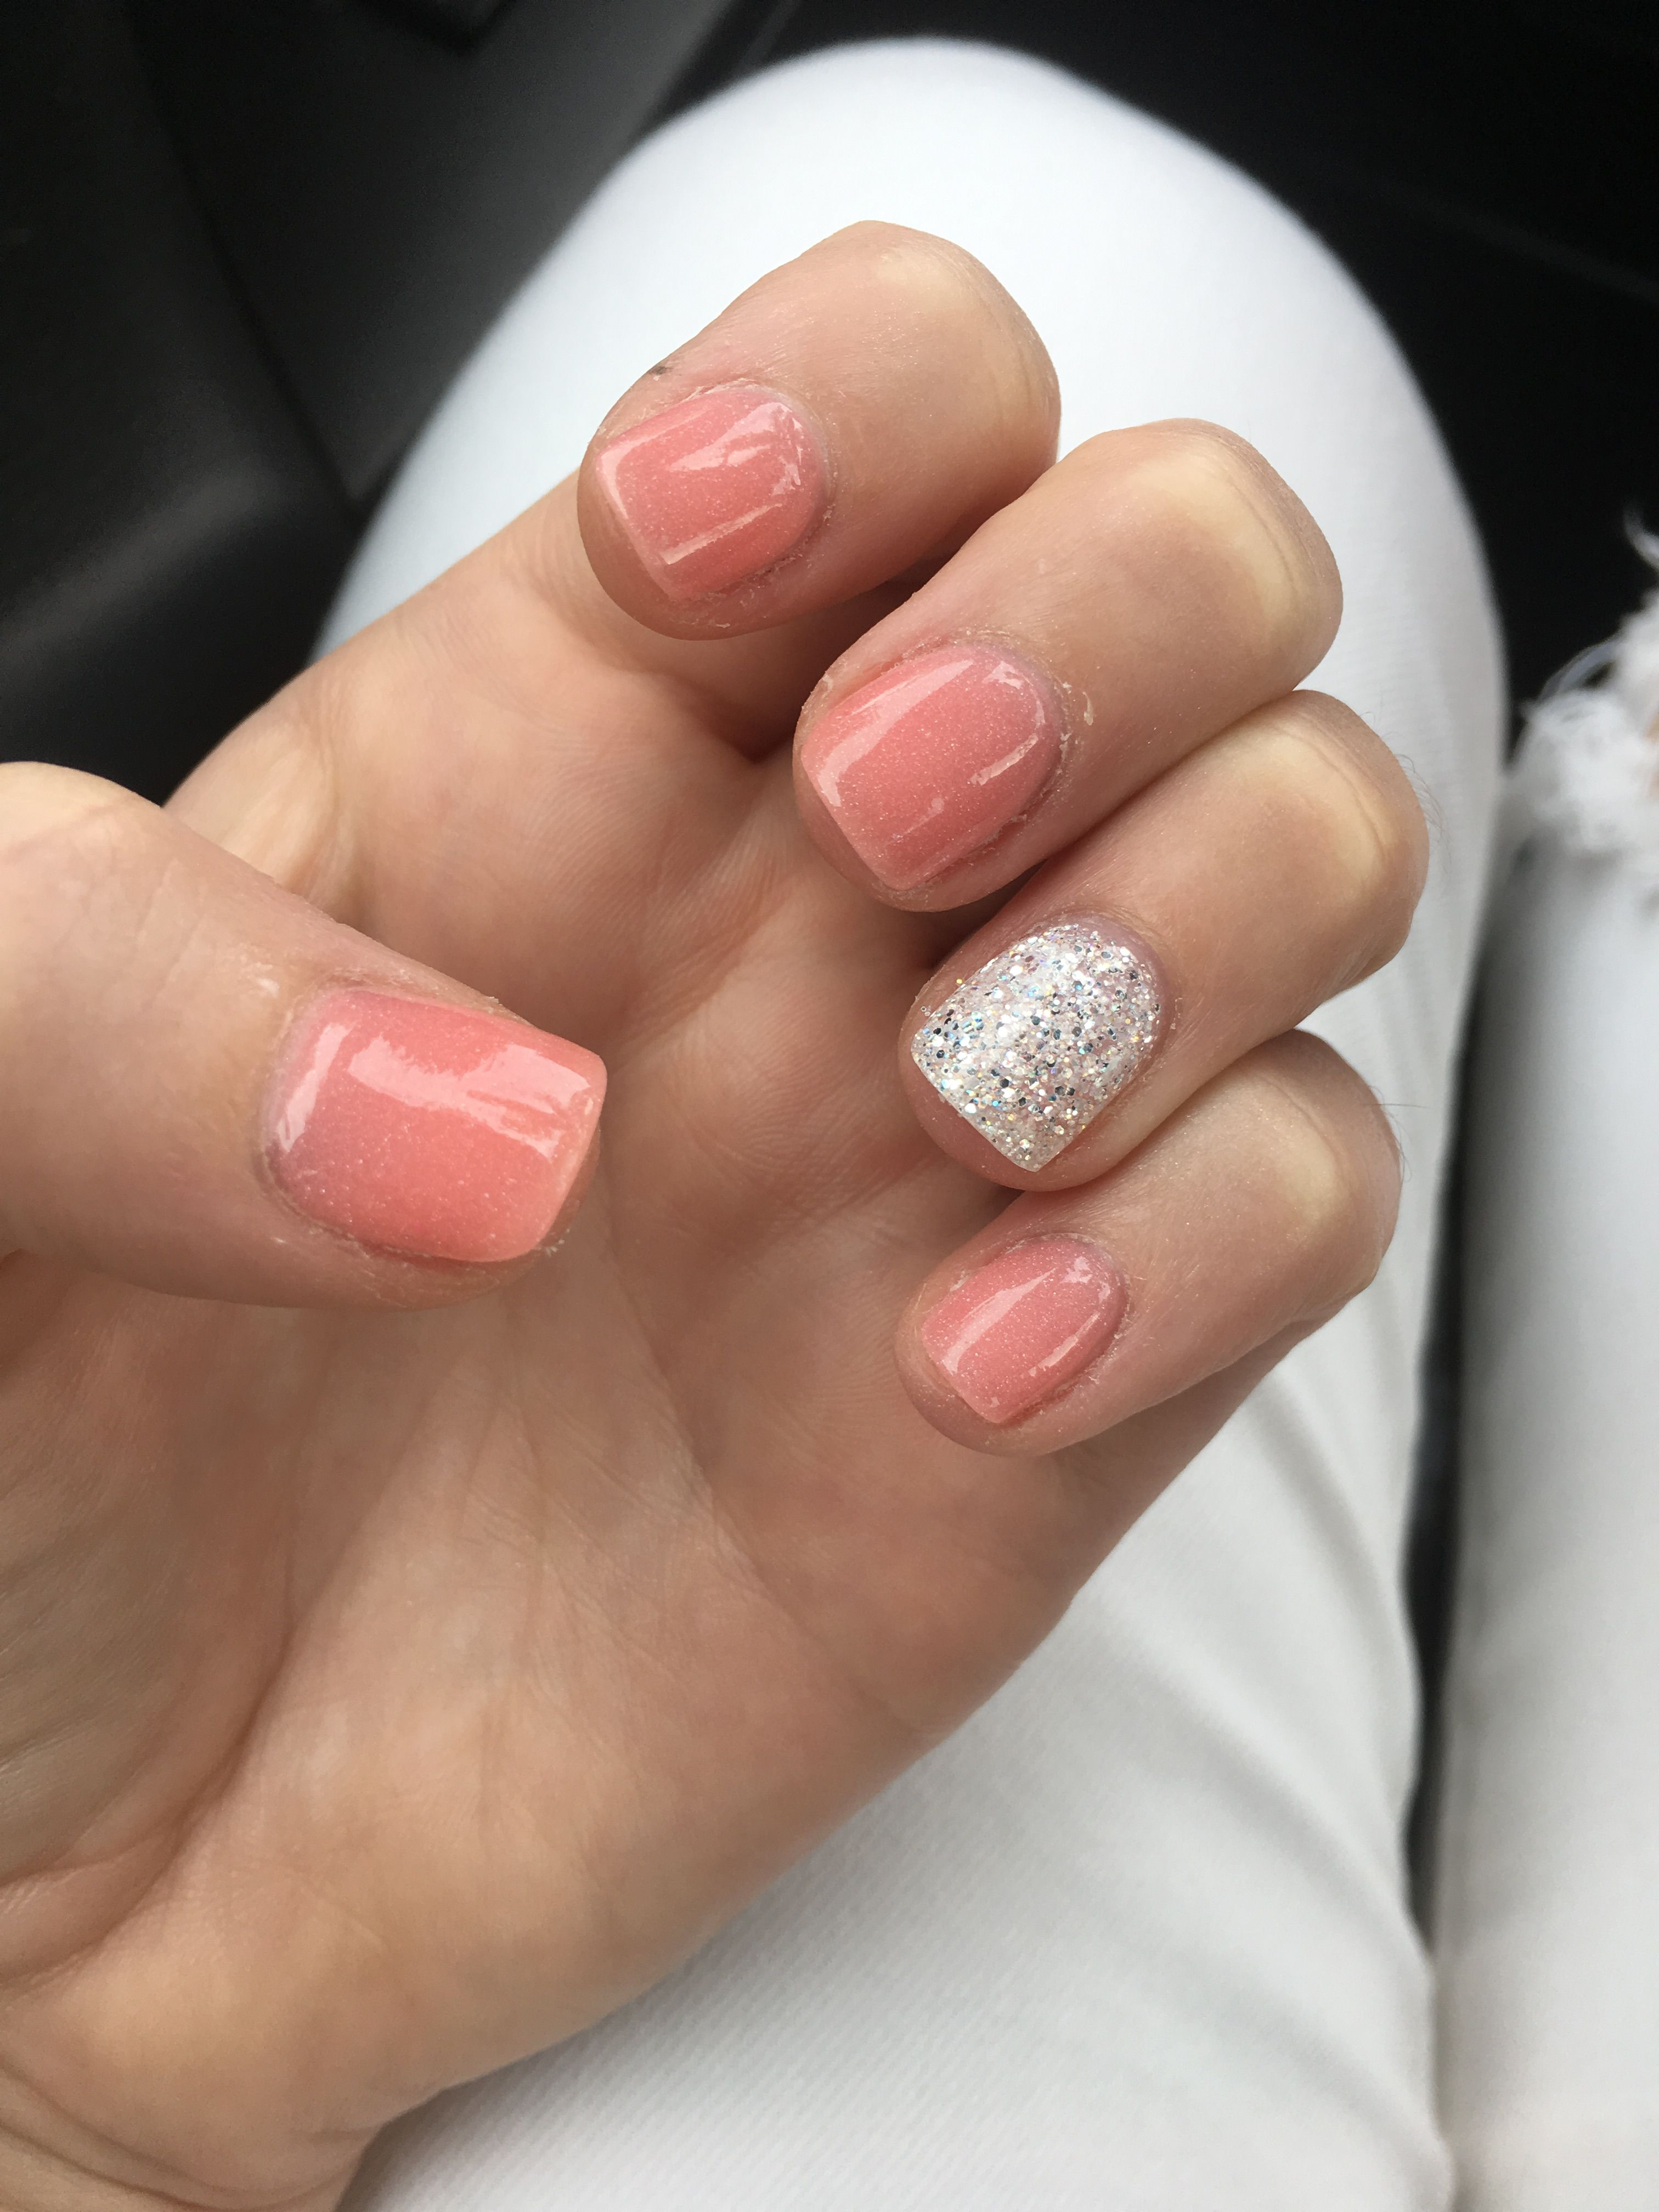 79 The Best Coffin Nails Ideas For This Summer 2019 72 Producttall Com Acrylic Nail Shapes Best Acrylic Nails Coffin Nails Designs